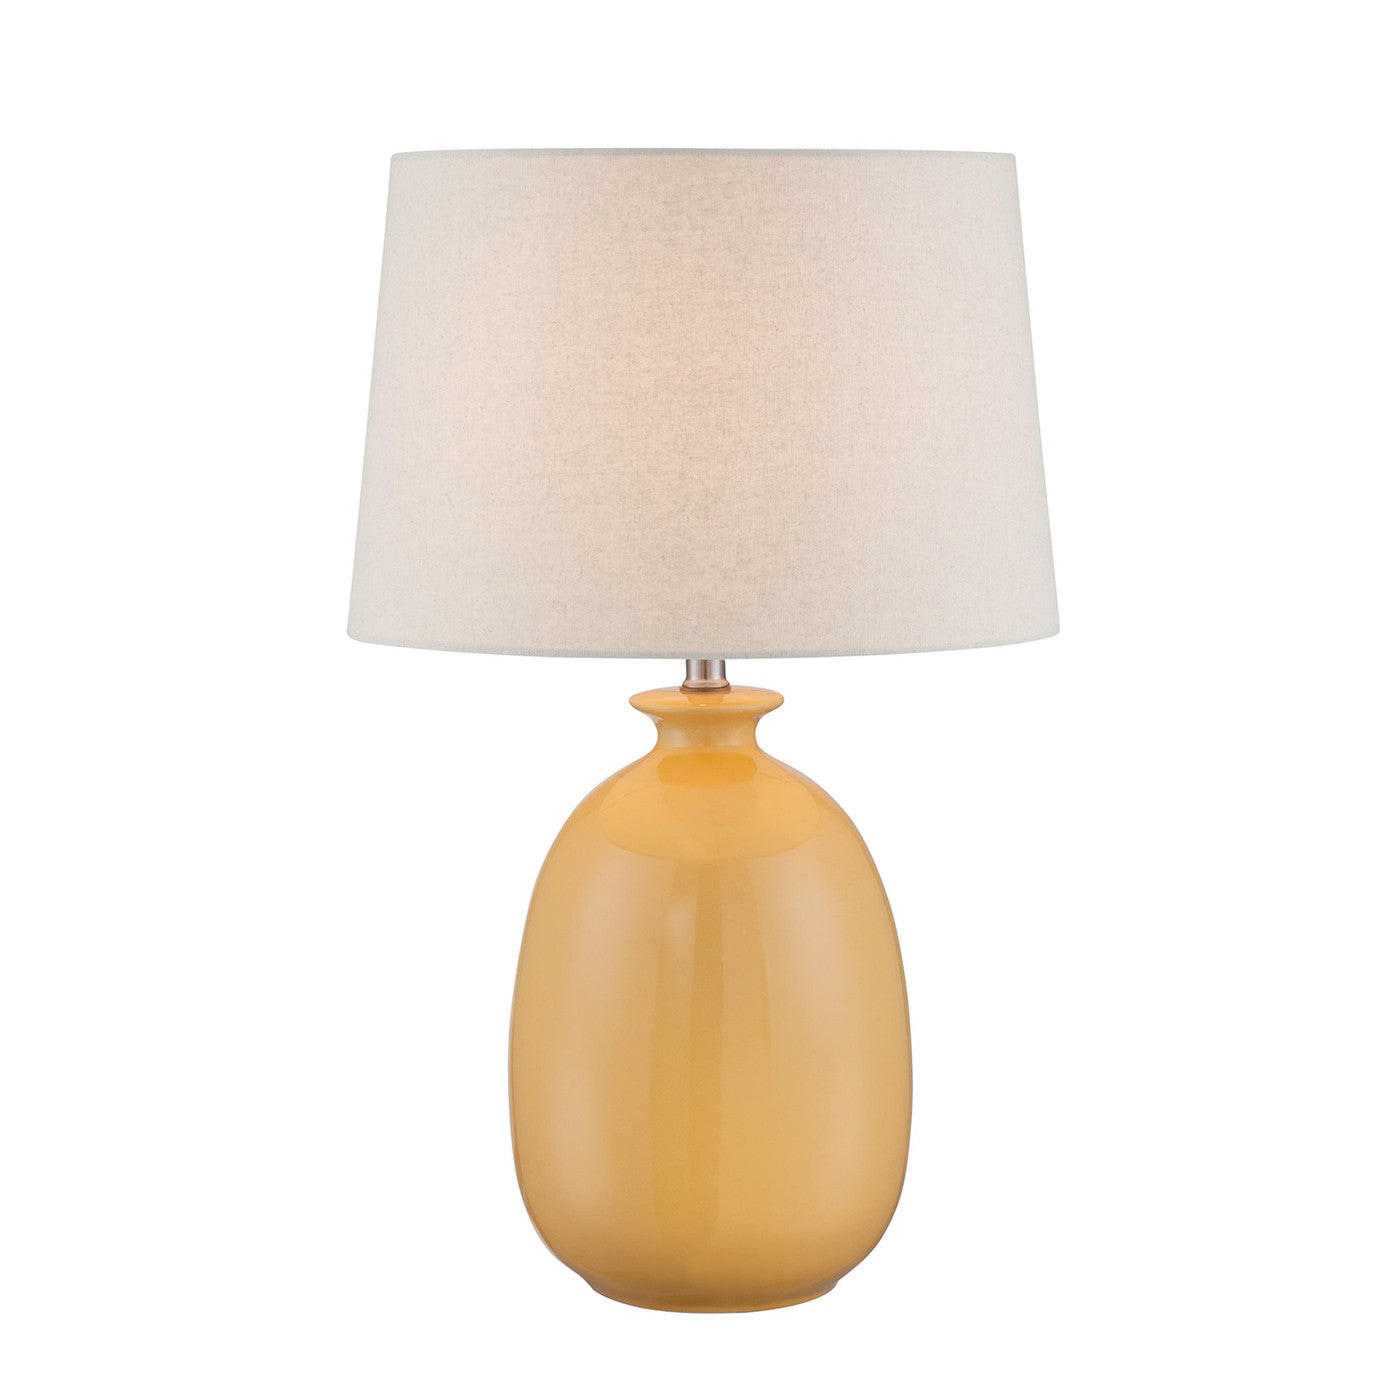 Max Table Lamp SUNNY DAY YELLOW